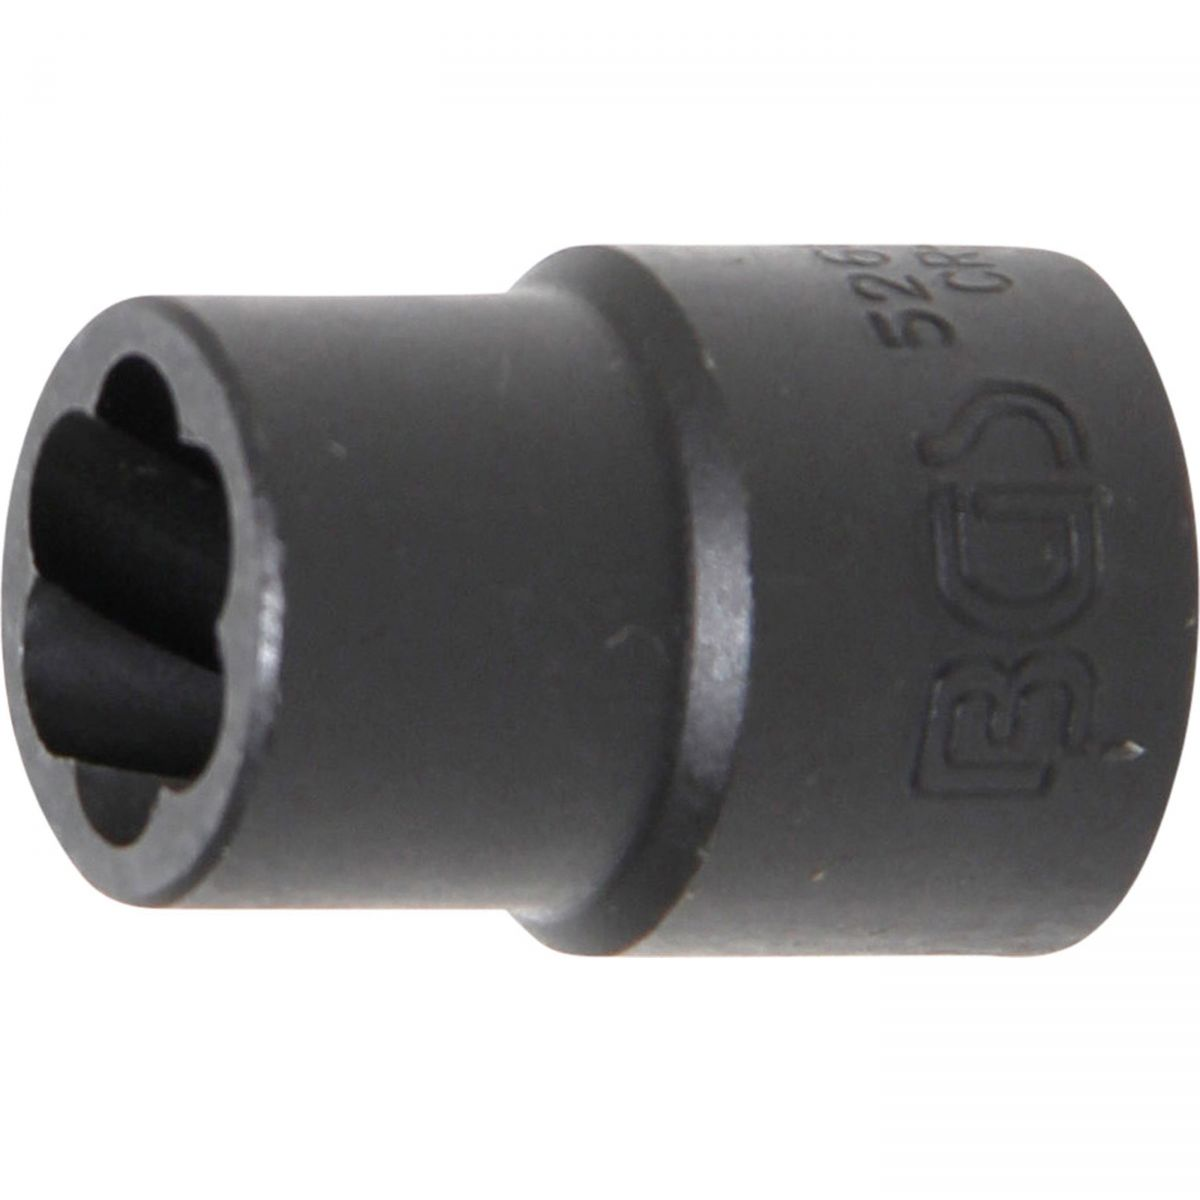 "Special Socket / Screw Extractor | 12.5 mm (1/2"") drive 